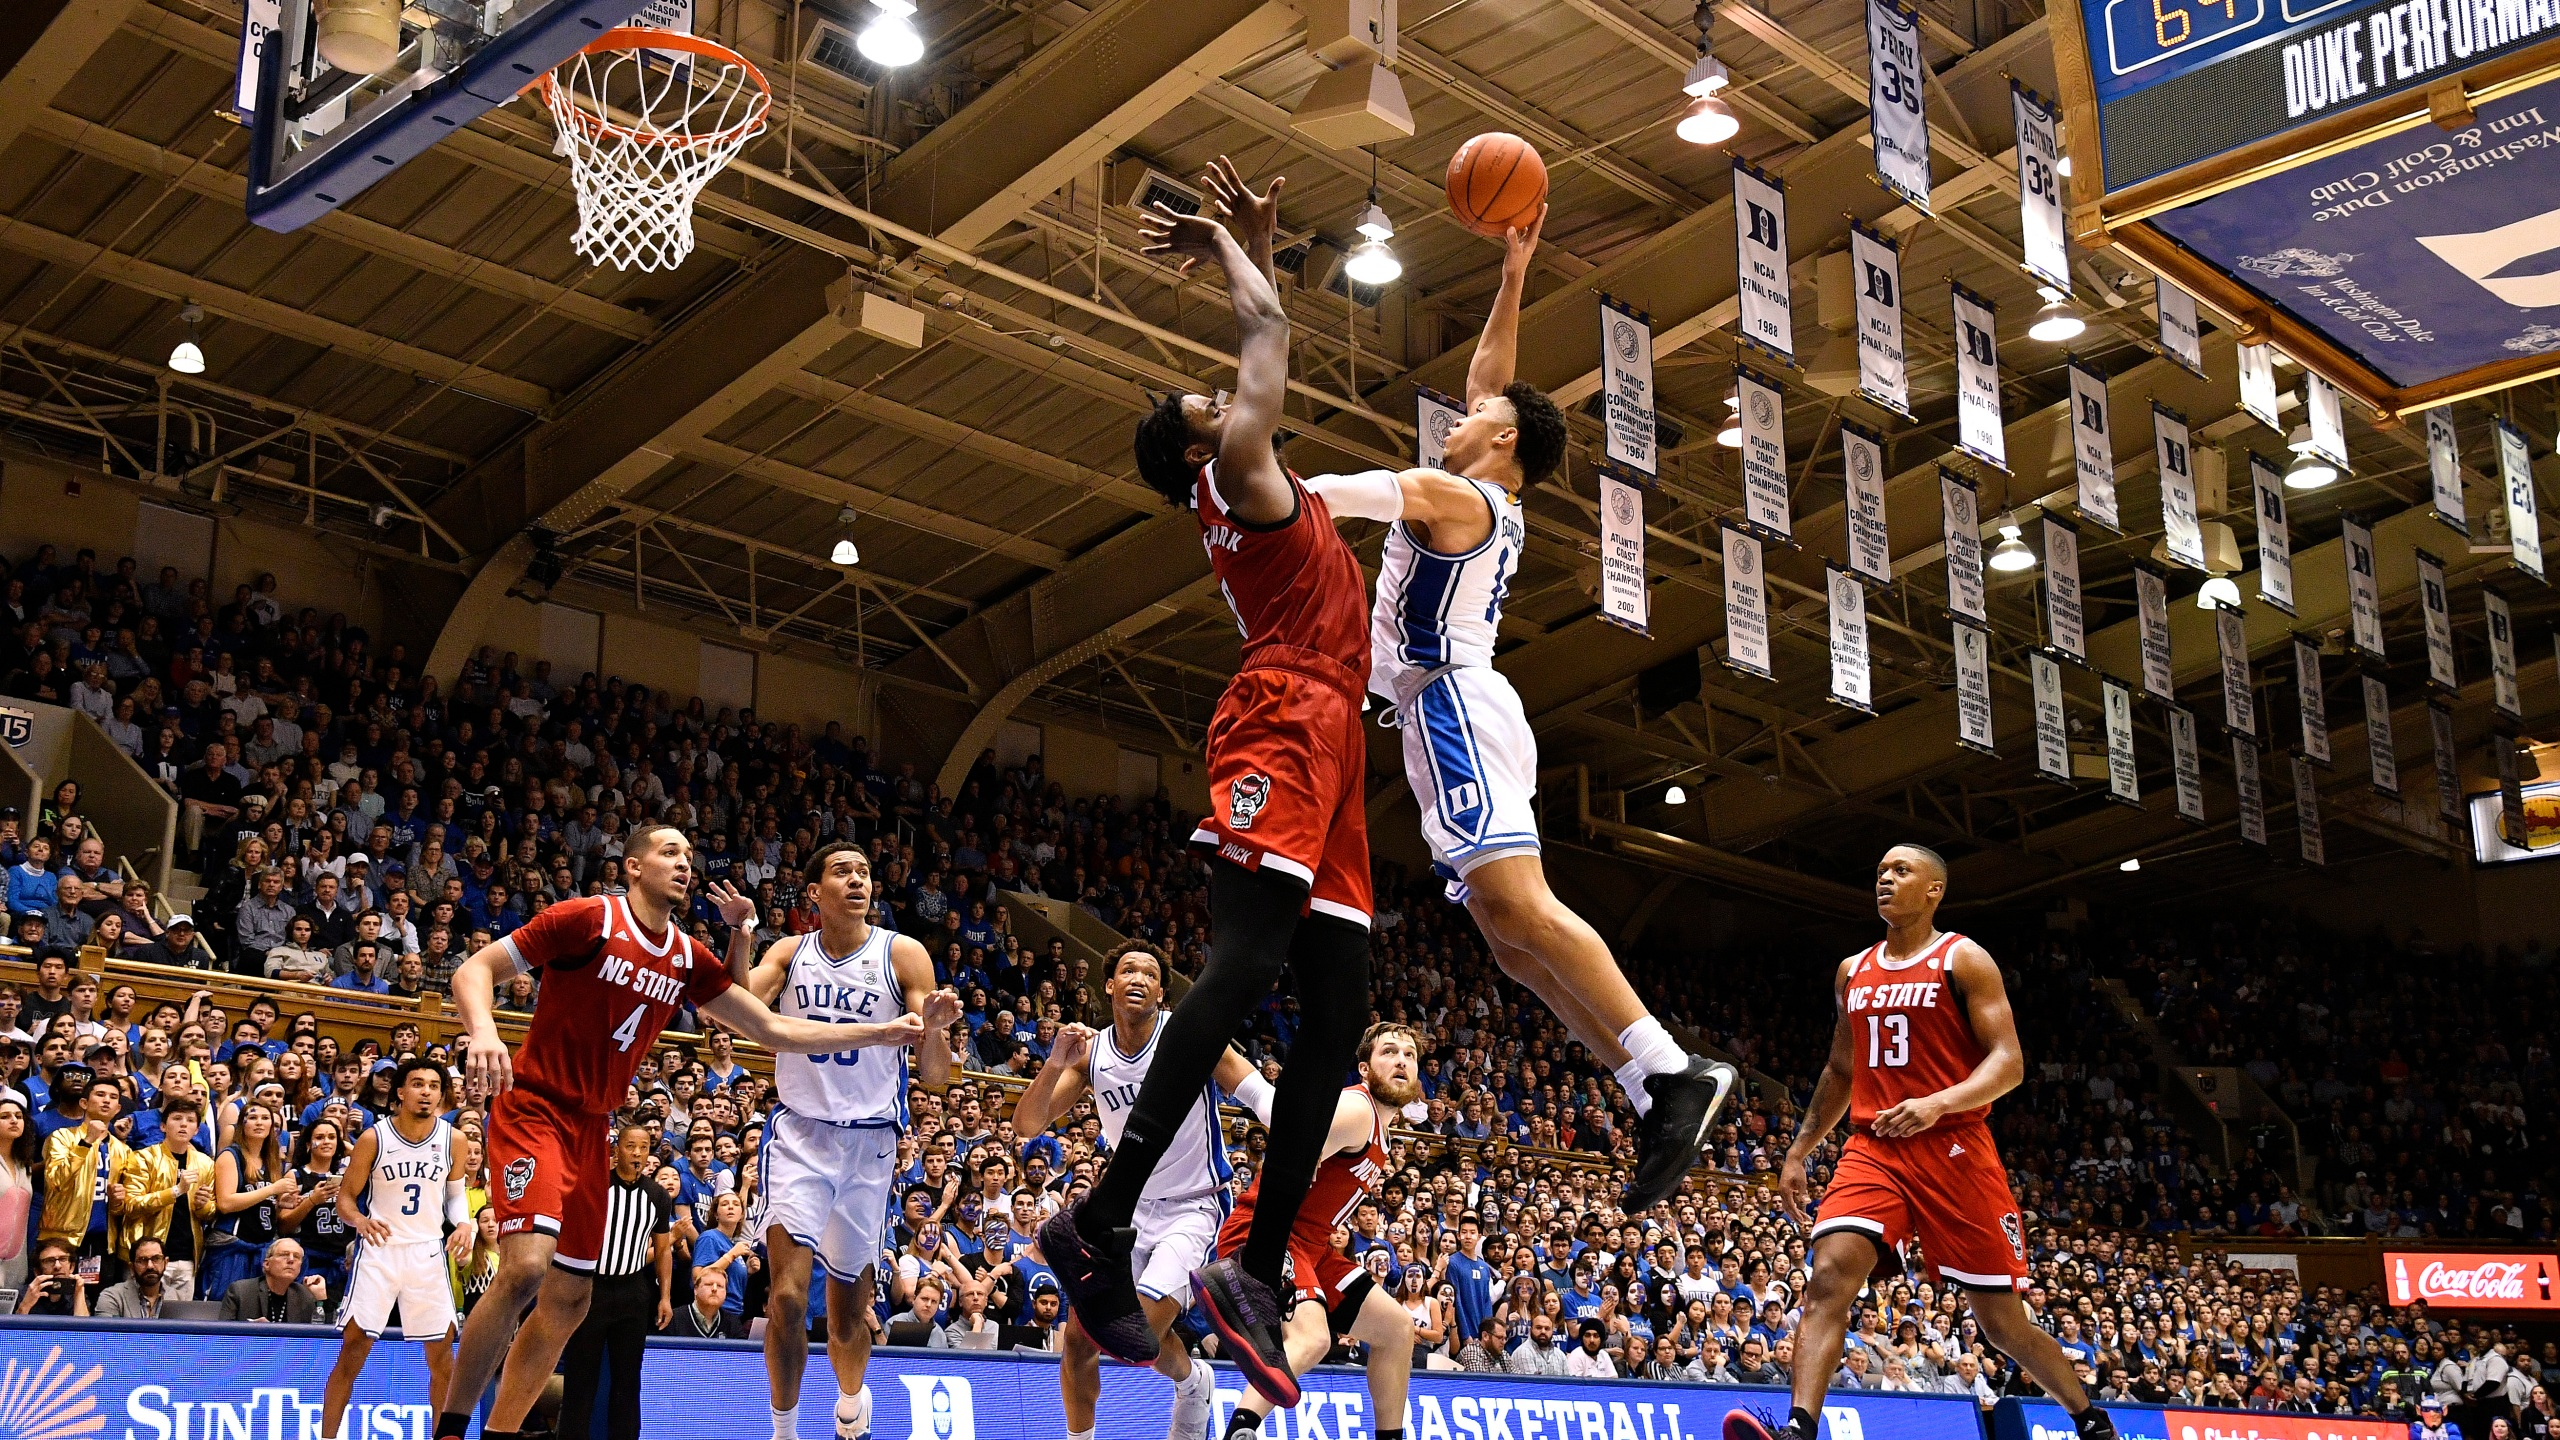 Jordan Goldwire #14 of the Duke Blue Devils drives against DJ Funderburk #0 of the North Carolina State Wolfpack during the second half of their game at Cameron Indoor Stadium on March 02, 2020 in Durham, North Carolina. Duke won 88-69. (Grant Halverson/Getty Images)